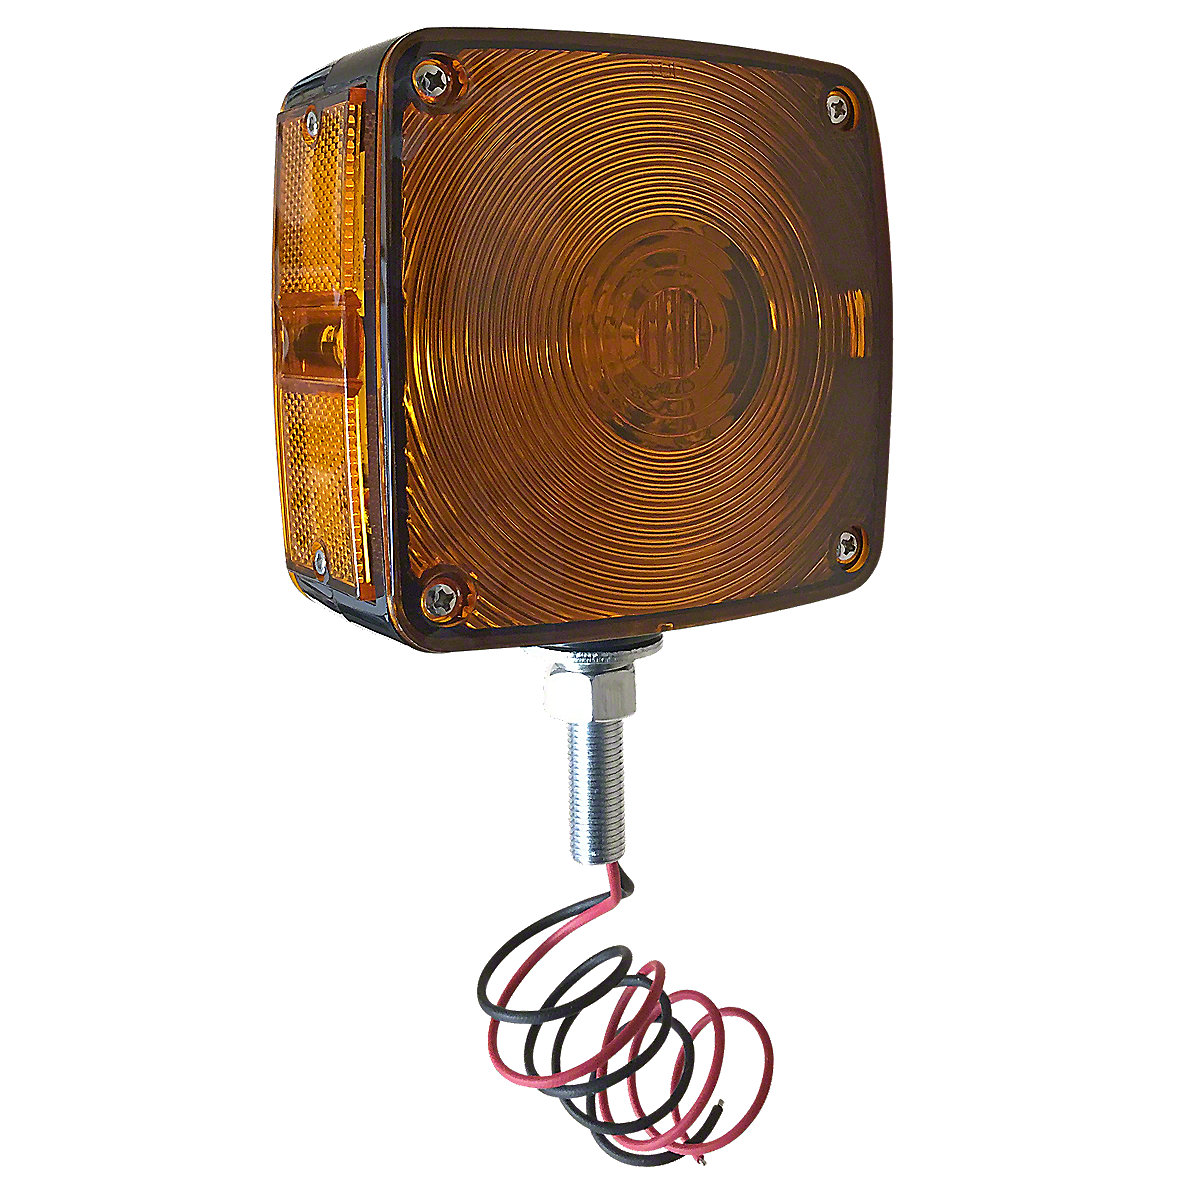 ABC4098 LED Fender and Cab Mount Warning Light